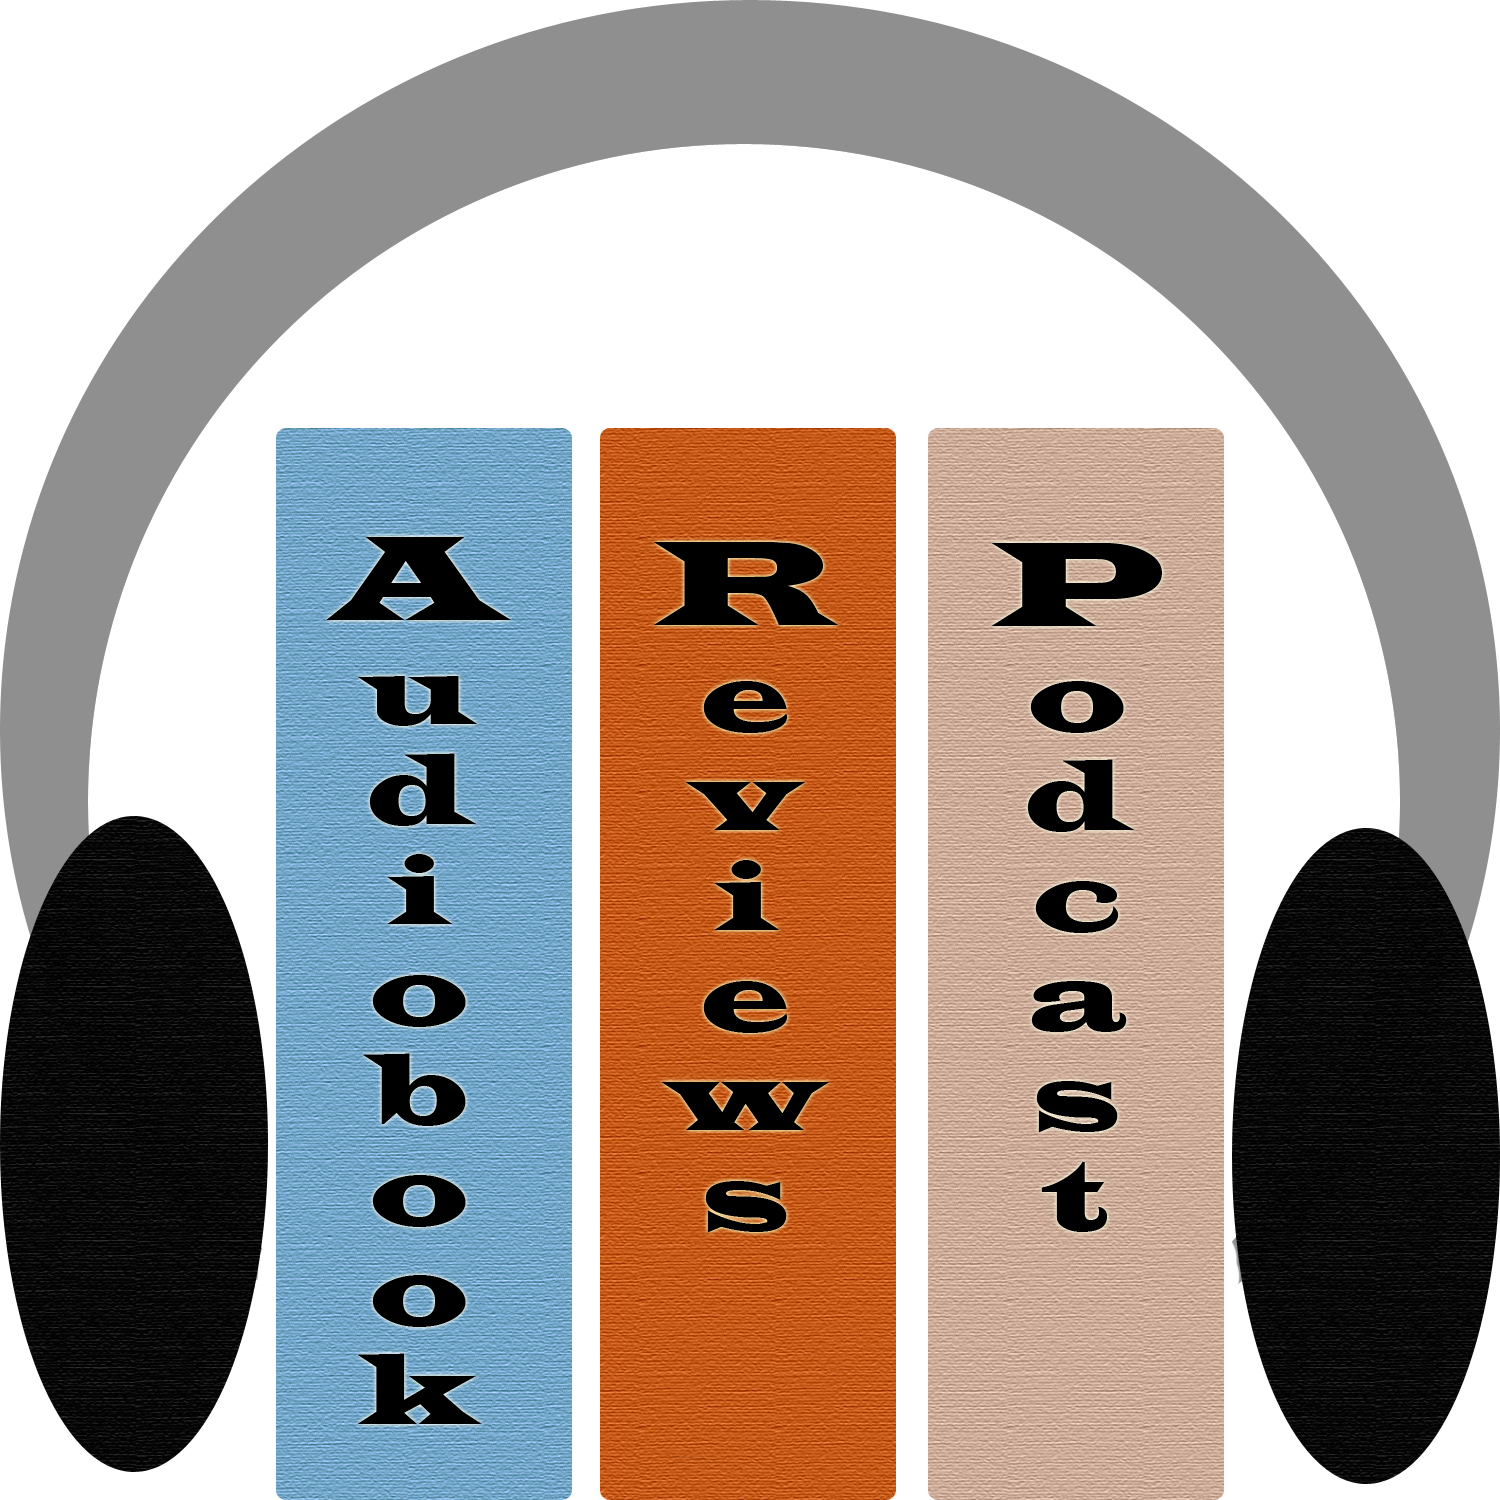 Podcast:Al Adjrumiieh (The Arabic Text with the Vowels